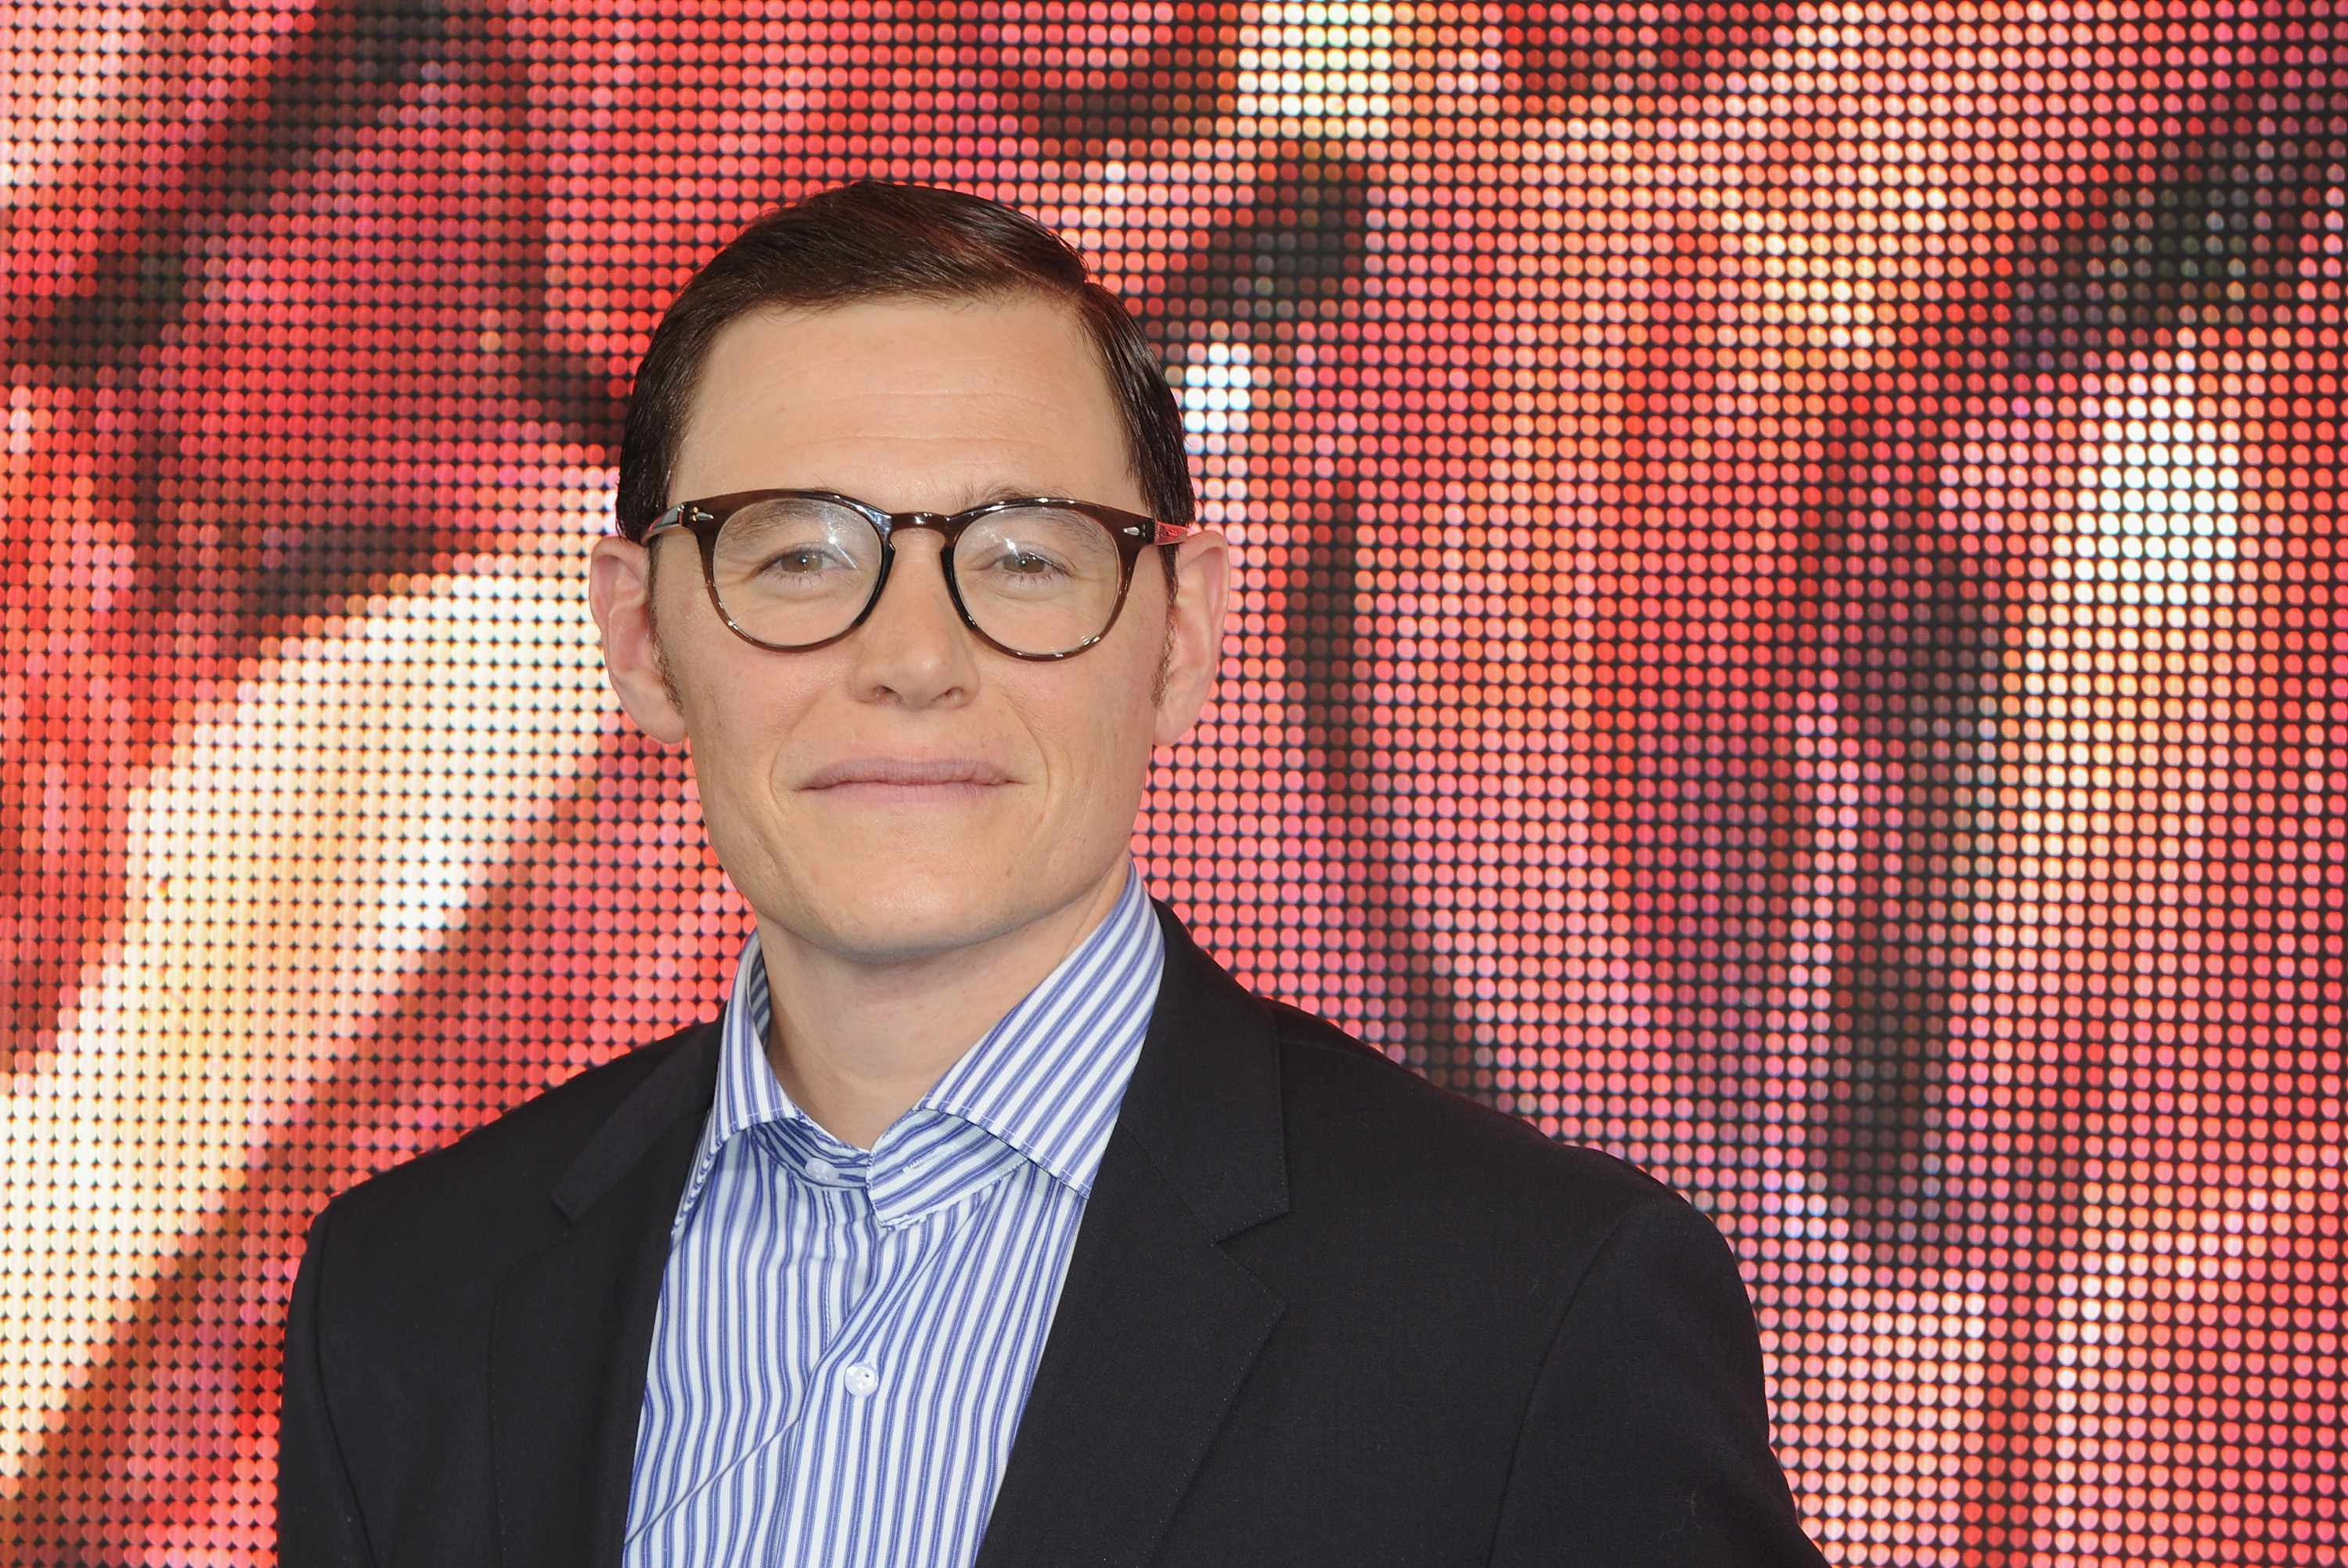 LONDON, ENGLAND - JULY 04:  Actor Burn Gorman attends the European Premiere of 'Pacific Rim' at BFI IMAX on July 4, 2013 in London, England.  (Photo by Ferdaus Shamim/WireImage)